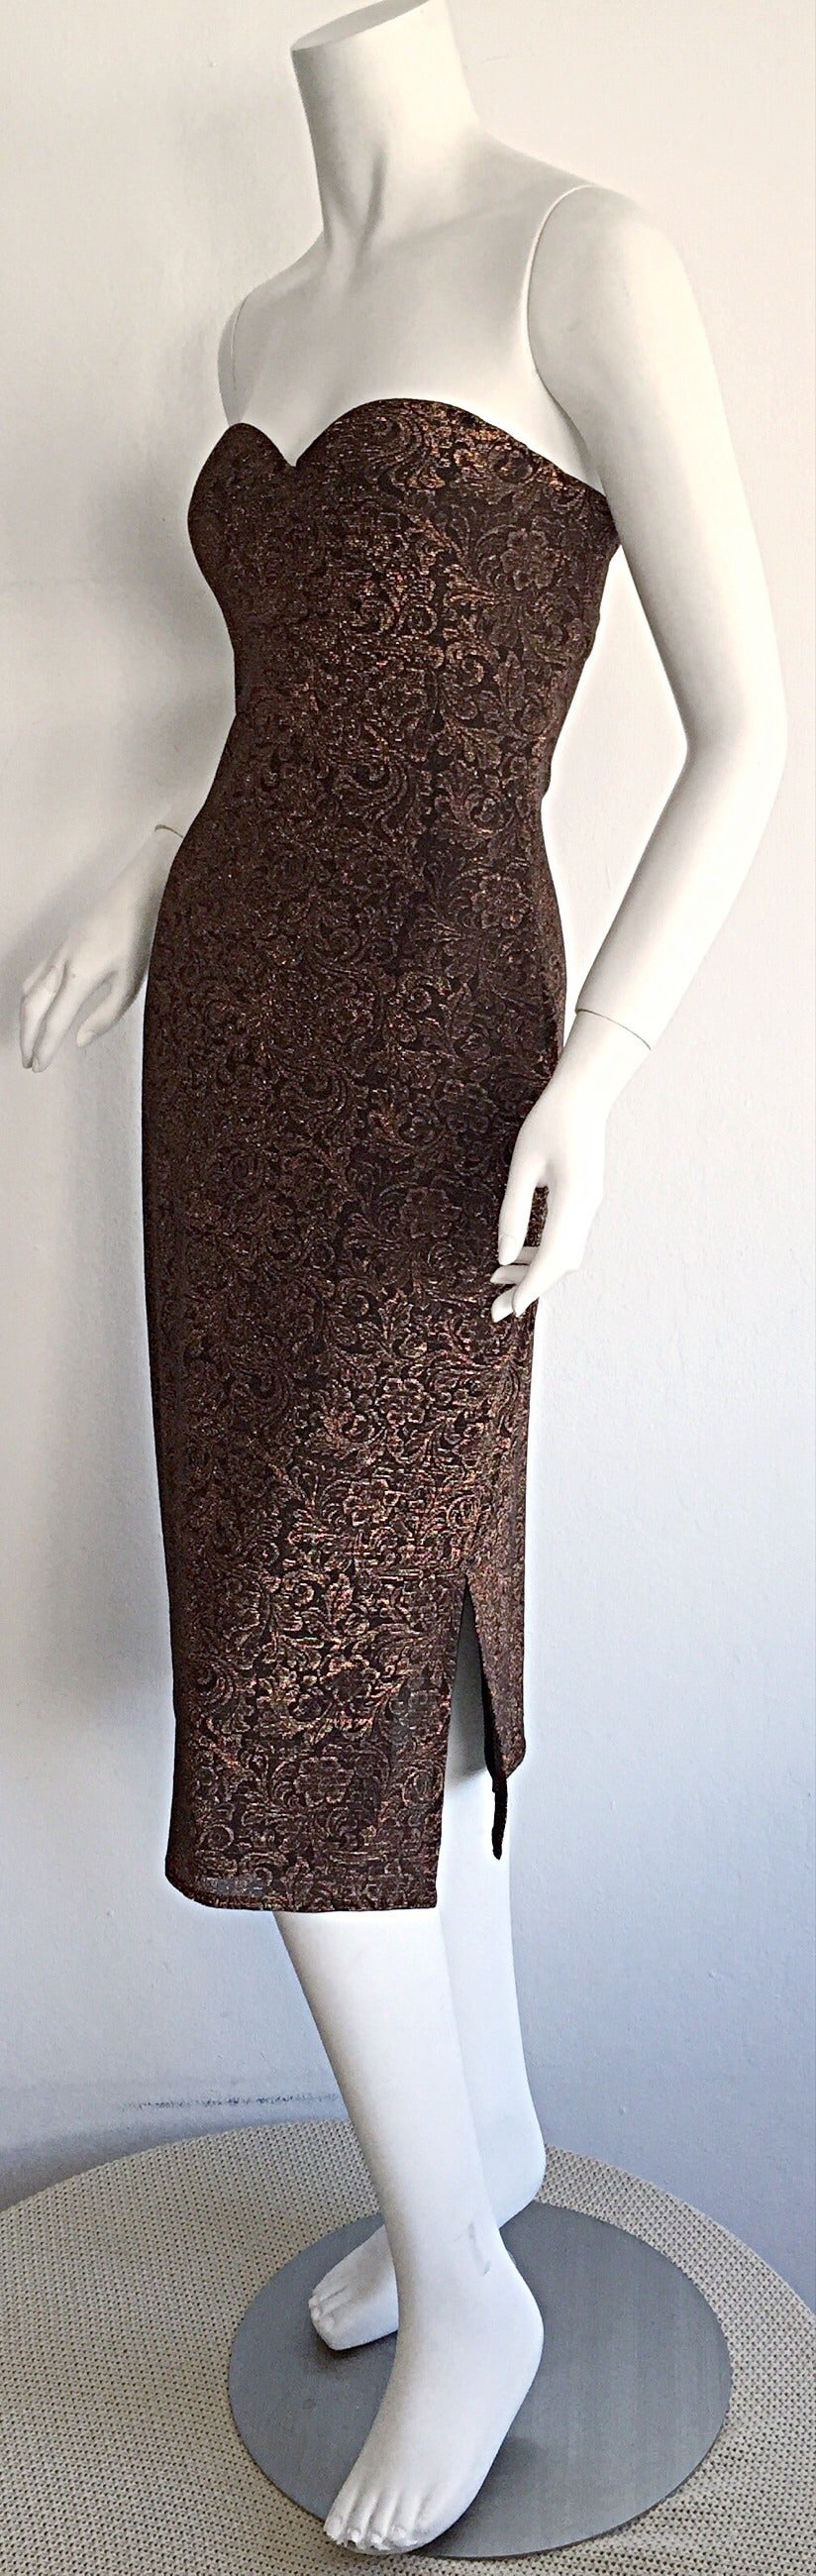 Black Beautiful Vintage Casadei Bronze Intricate Metallic Dress w/ Convertible Straps For Sale